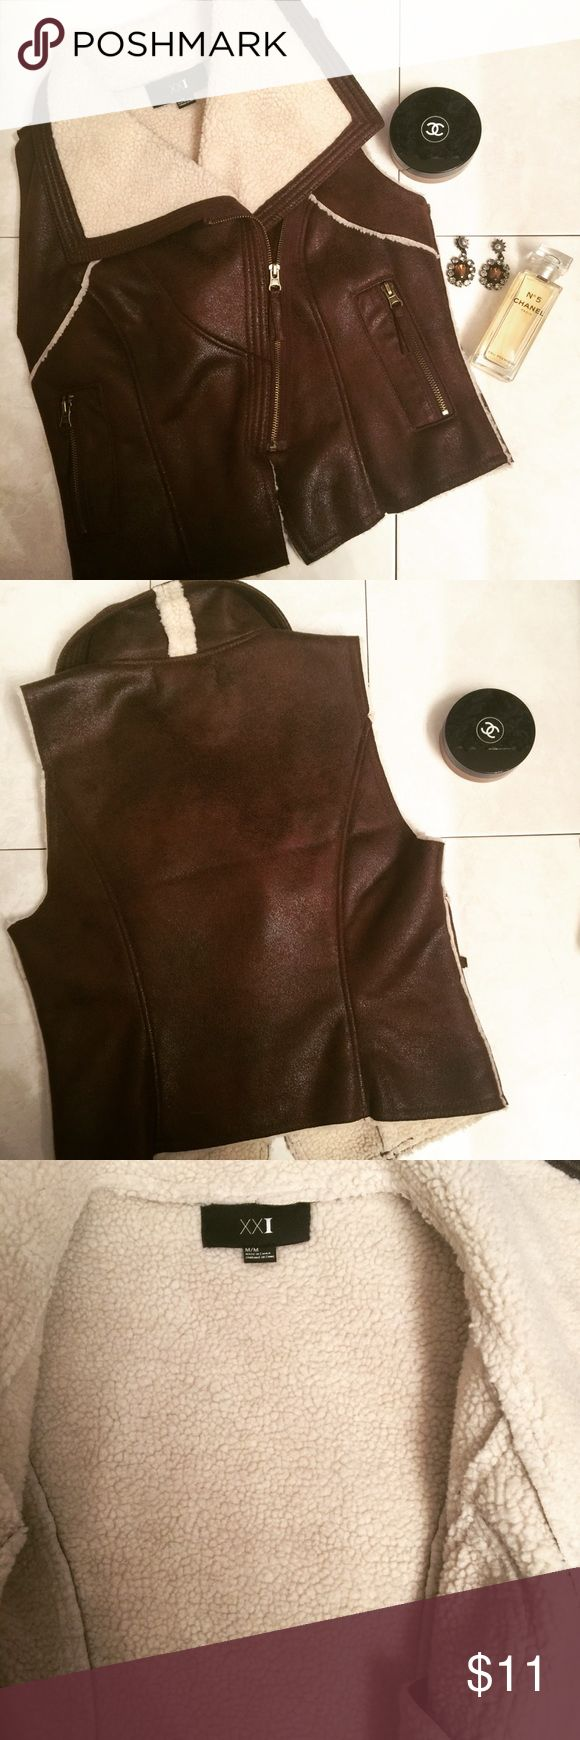 Dark Brown Vest from Forever 21. Medium. Mint Worn once. It's super cute with jeans. Size medium. From forever 21. Excellent condition. Bundle and save 💁🏼 Forever 21 Tops